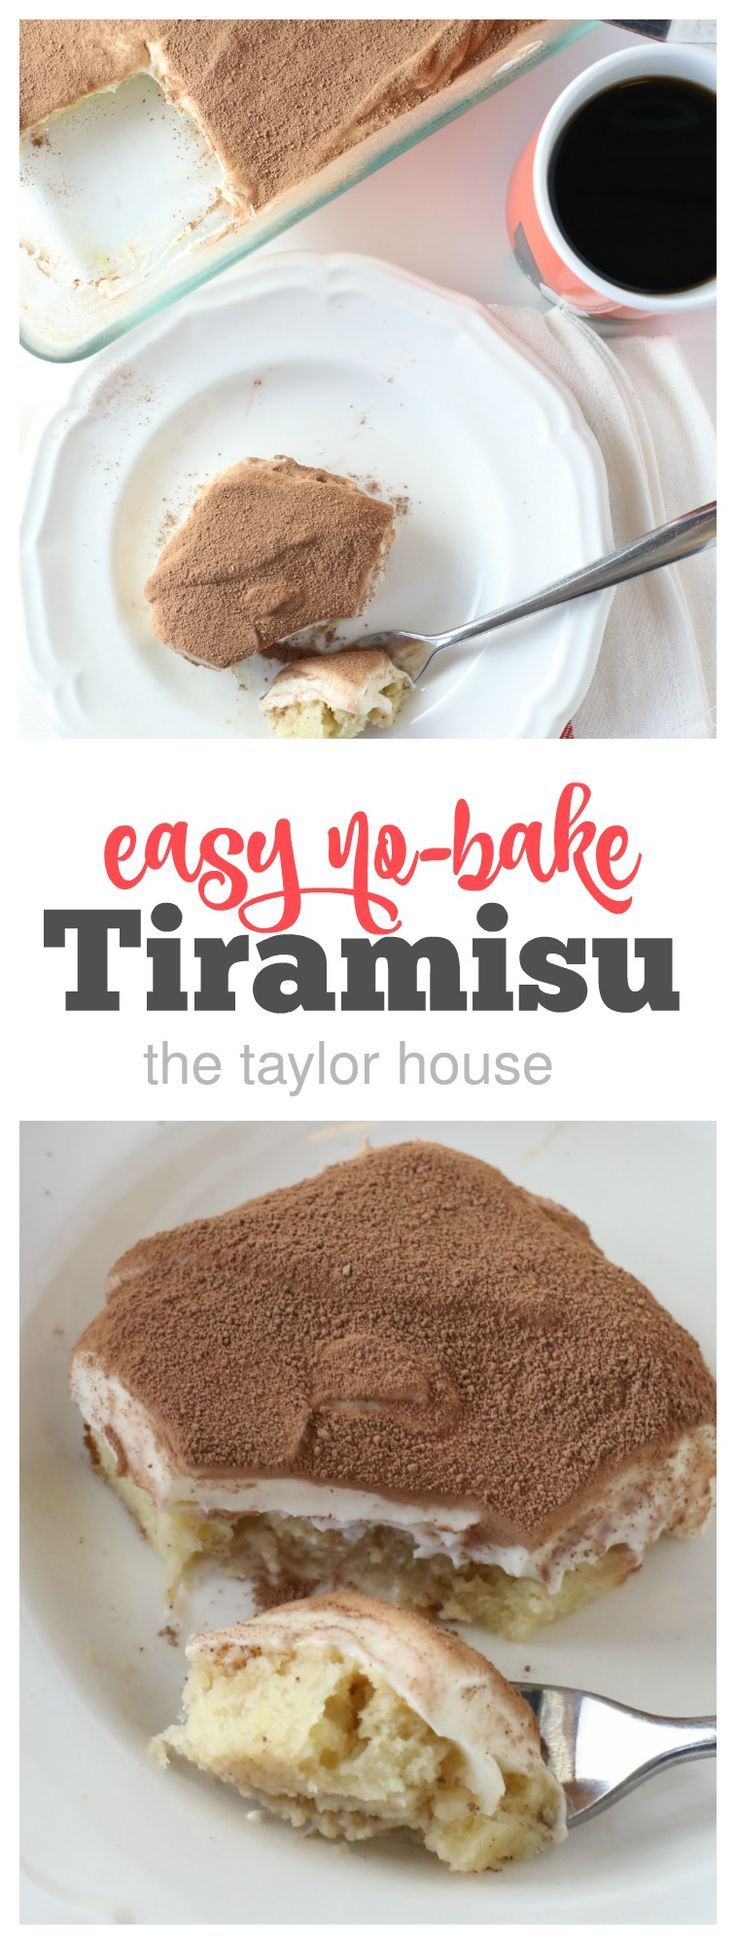 Easy No-Bake Tiramisu | RECIPES No Bake Desserts ...